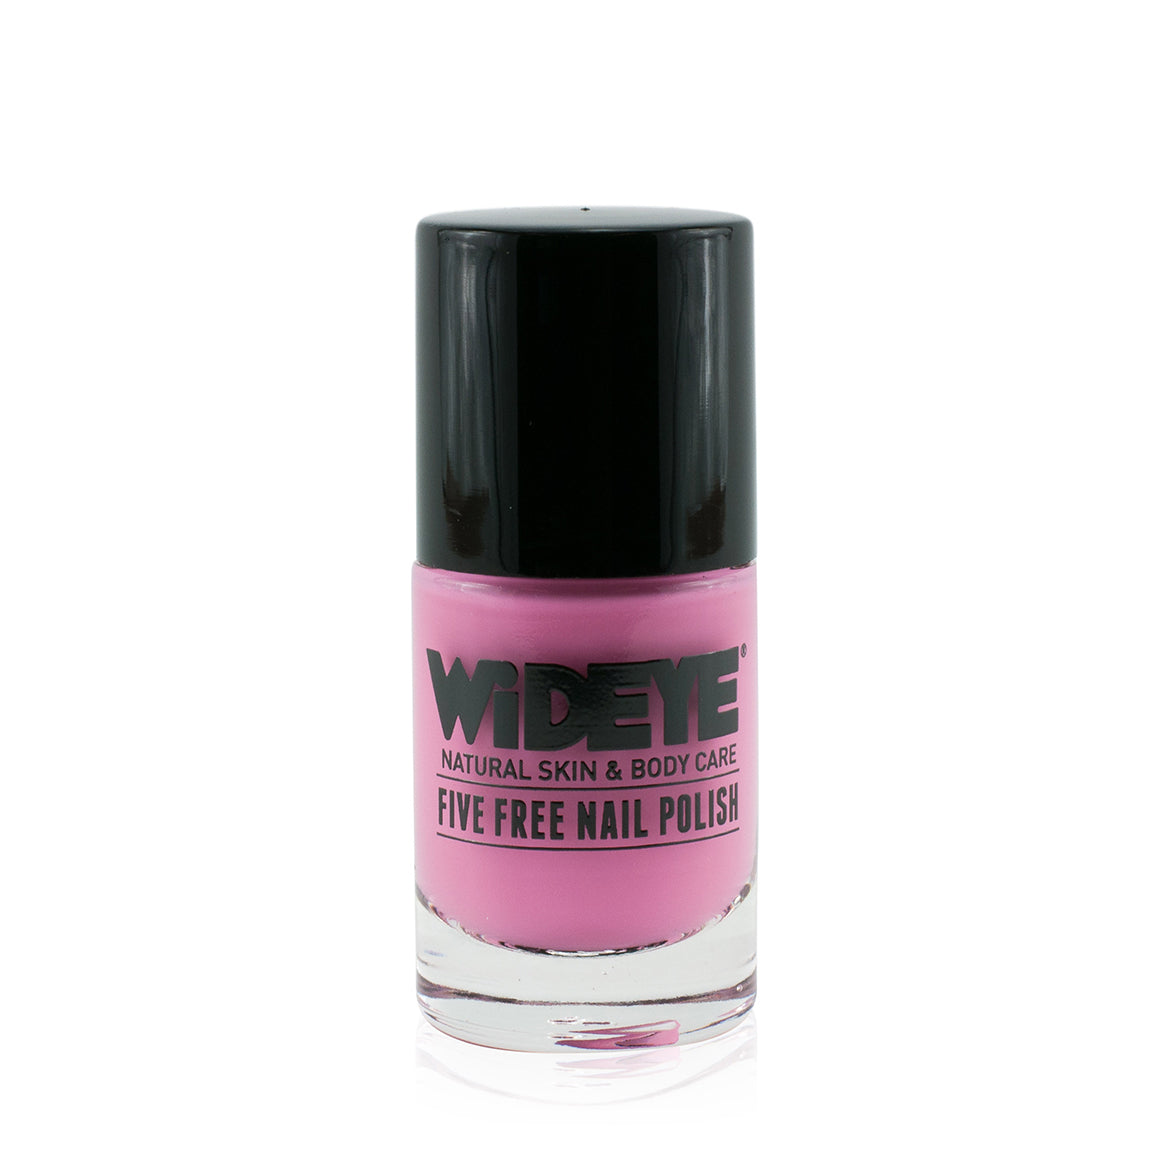 Baby pink nail polish in glass bottle by WiDEYE.